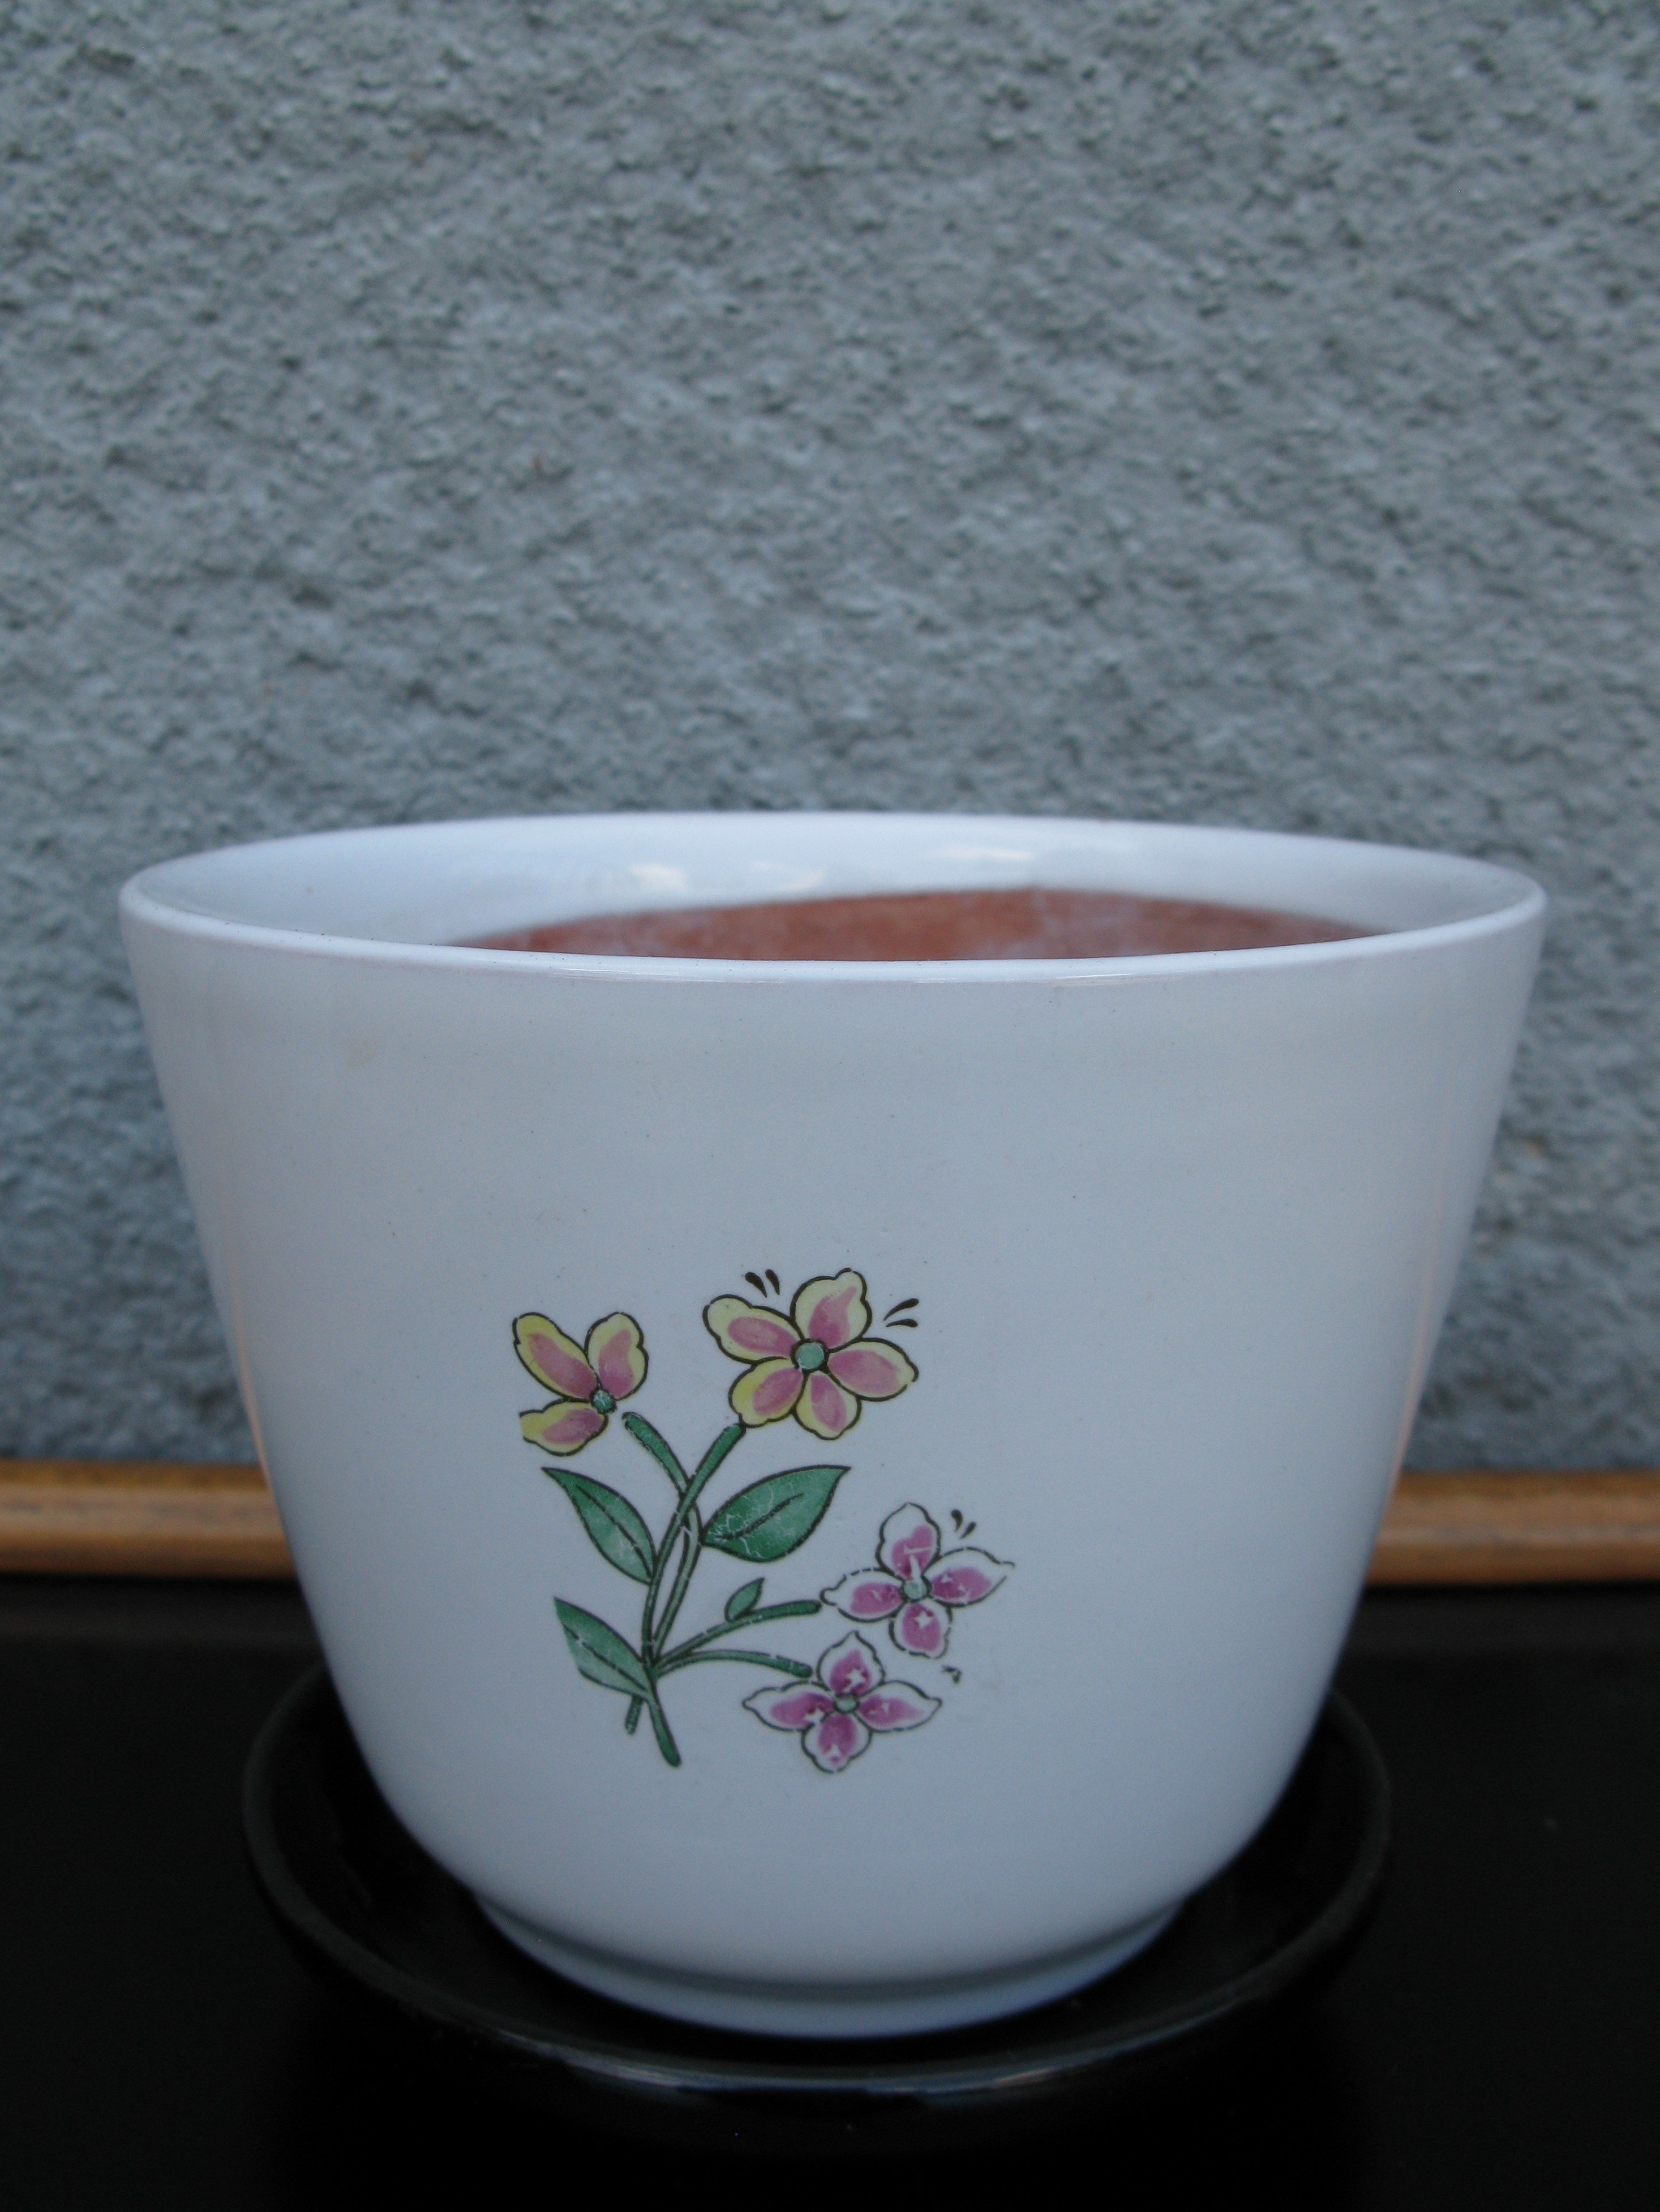 linne´ flower pot nr 2 item 2